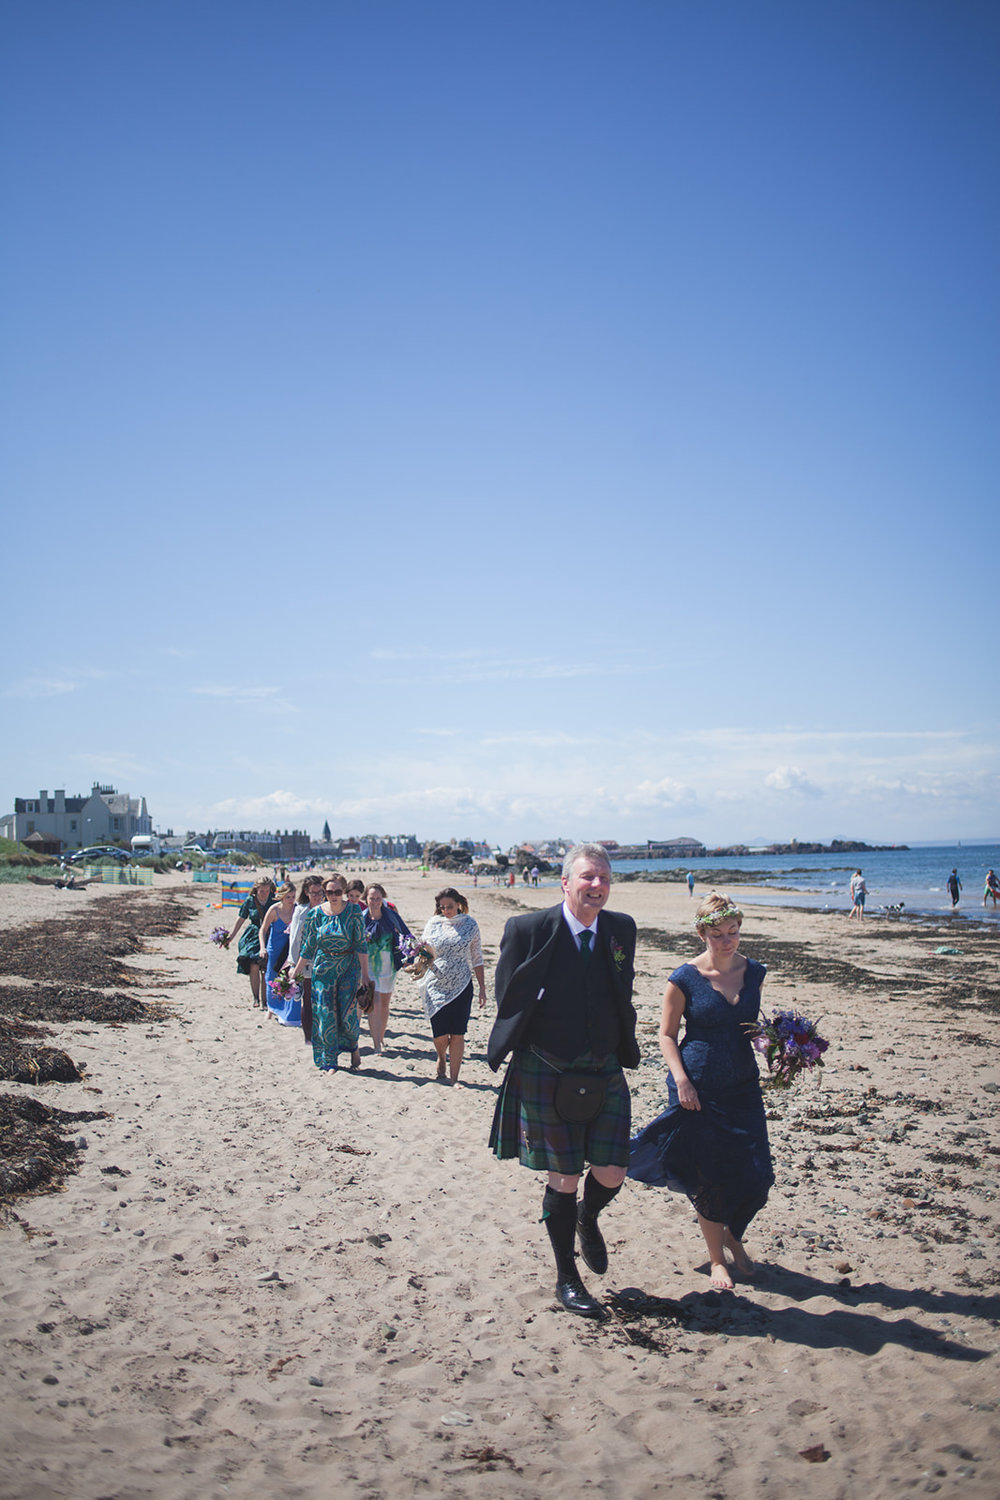 a bridal party walk down the beach towards the ceremony. scotland outdoor humanist beach wedding. stop motion wedding films uk